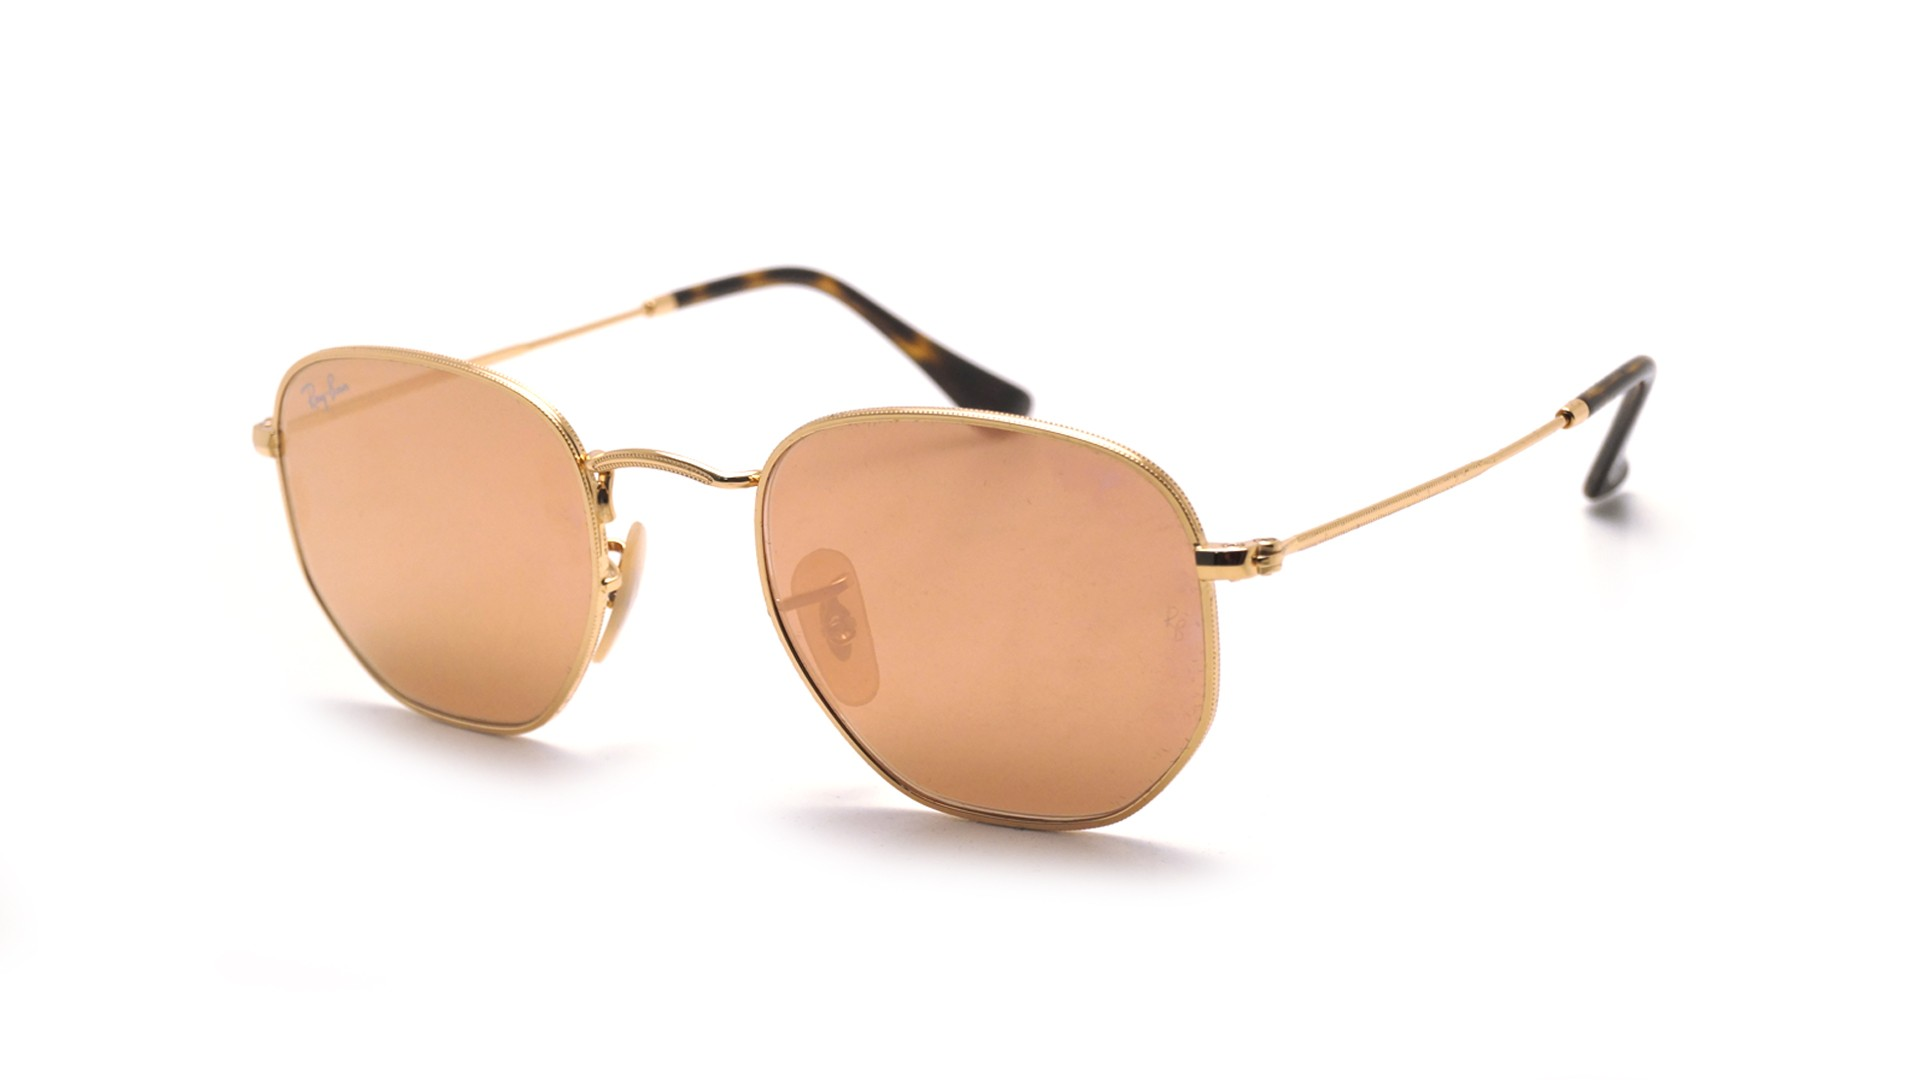 9b0ff6dd4b Sunglasses Ray-Ban Hexagonal flat lenses Gold RB3548N 001 Z2 48-21 Small  Mirror